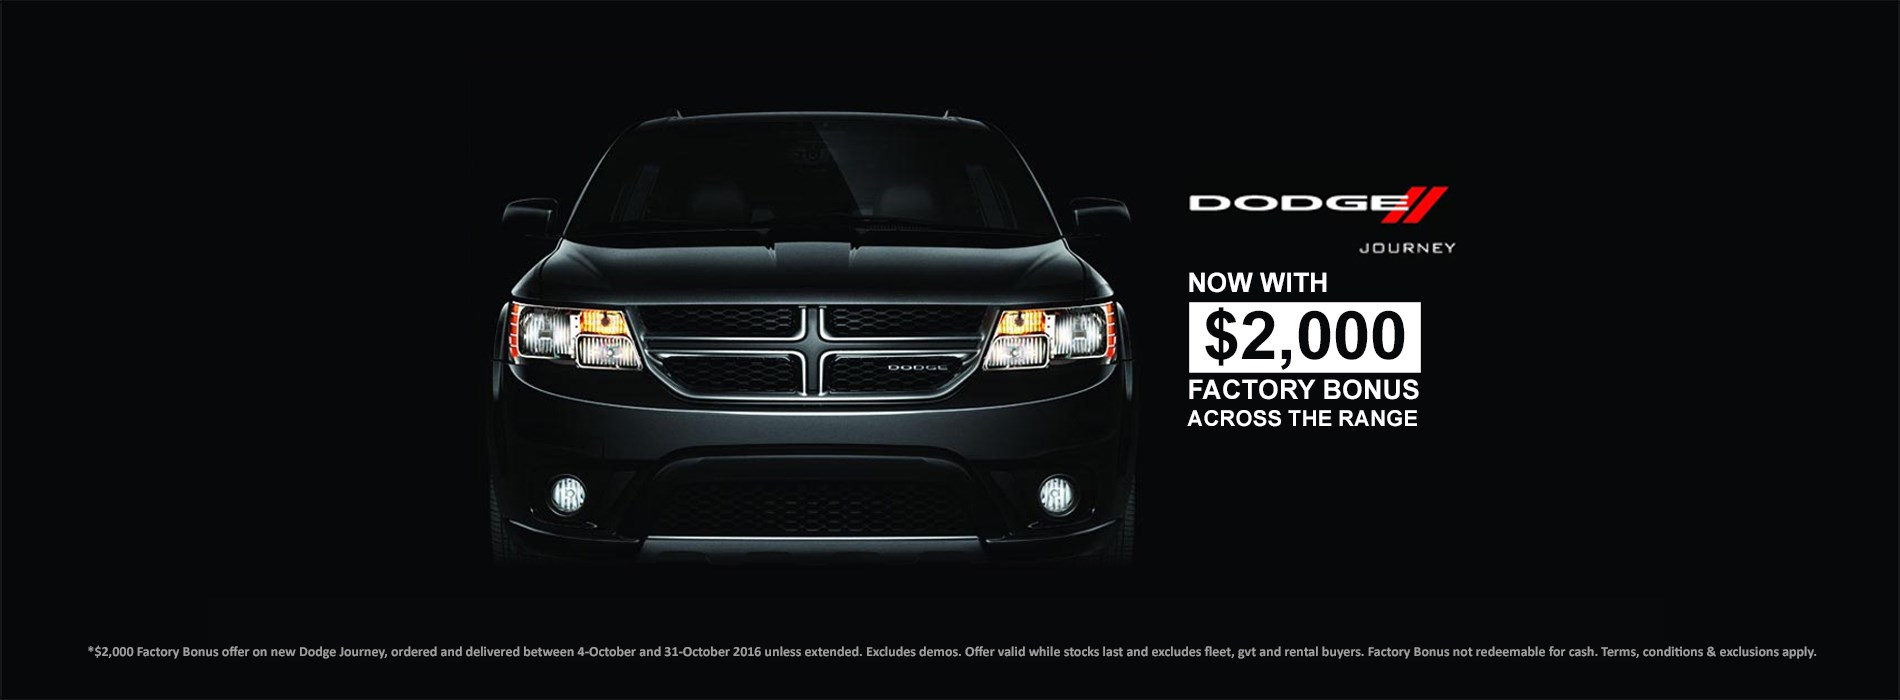 Dodge Journey Offer